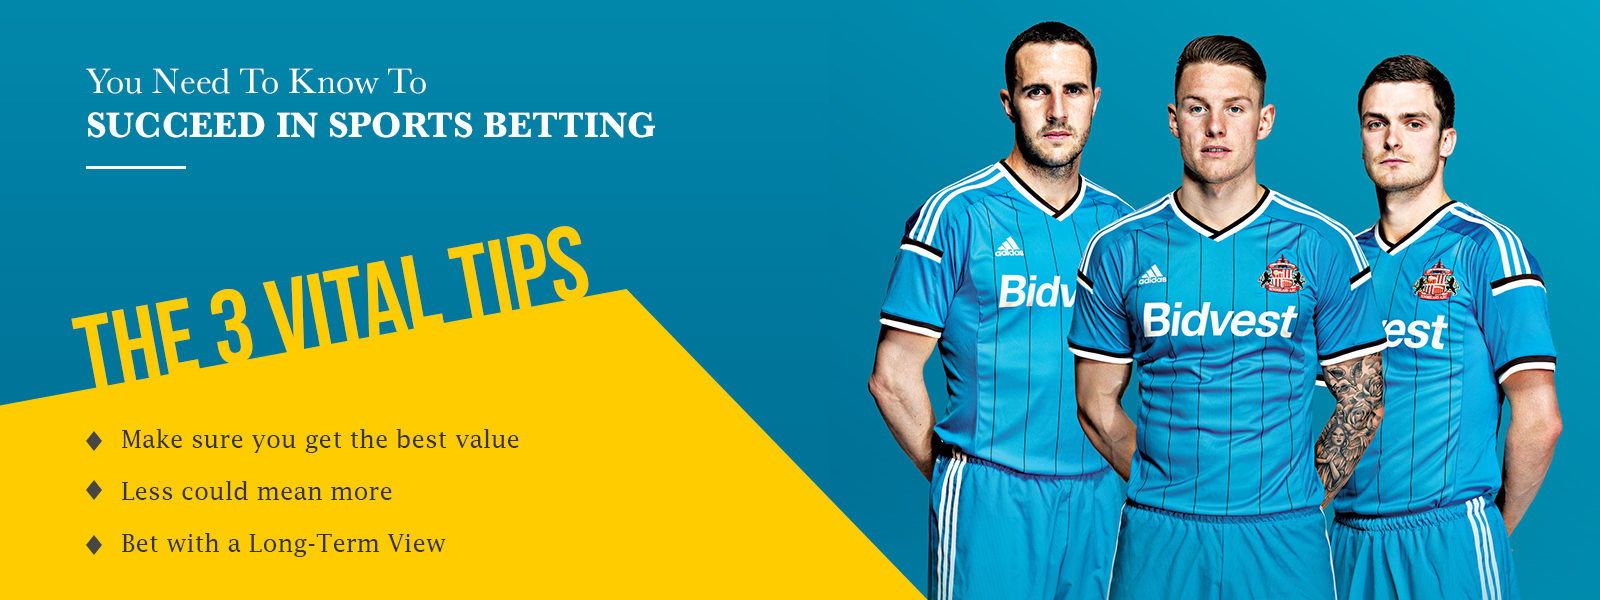 The Three Vital Tips You Need To Know To Succeed In Sports Betting